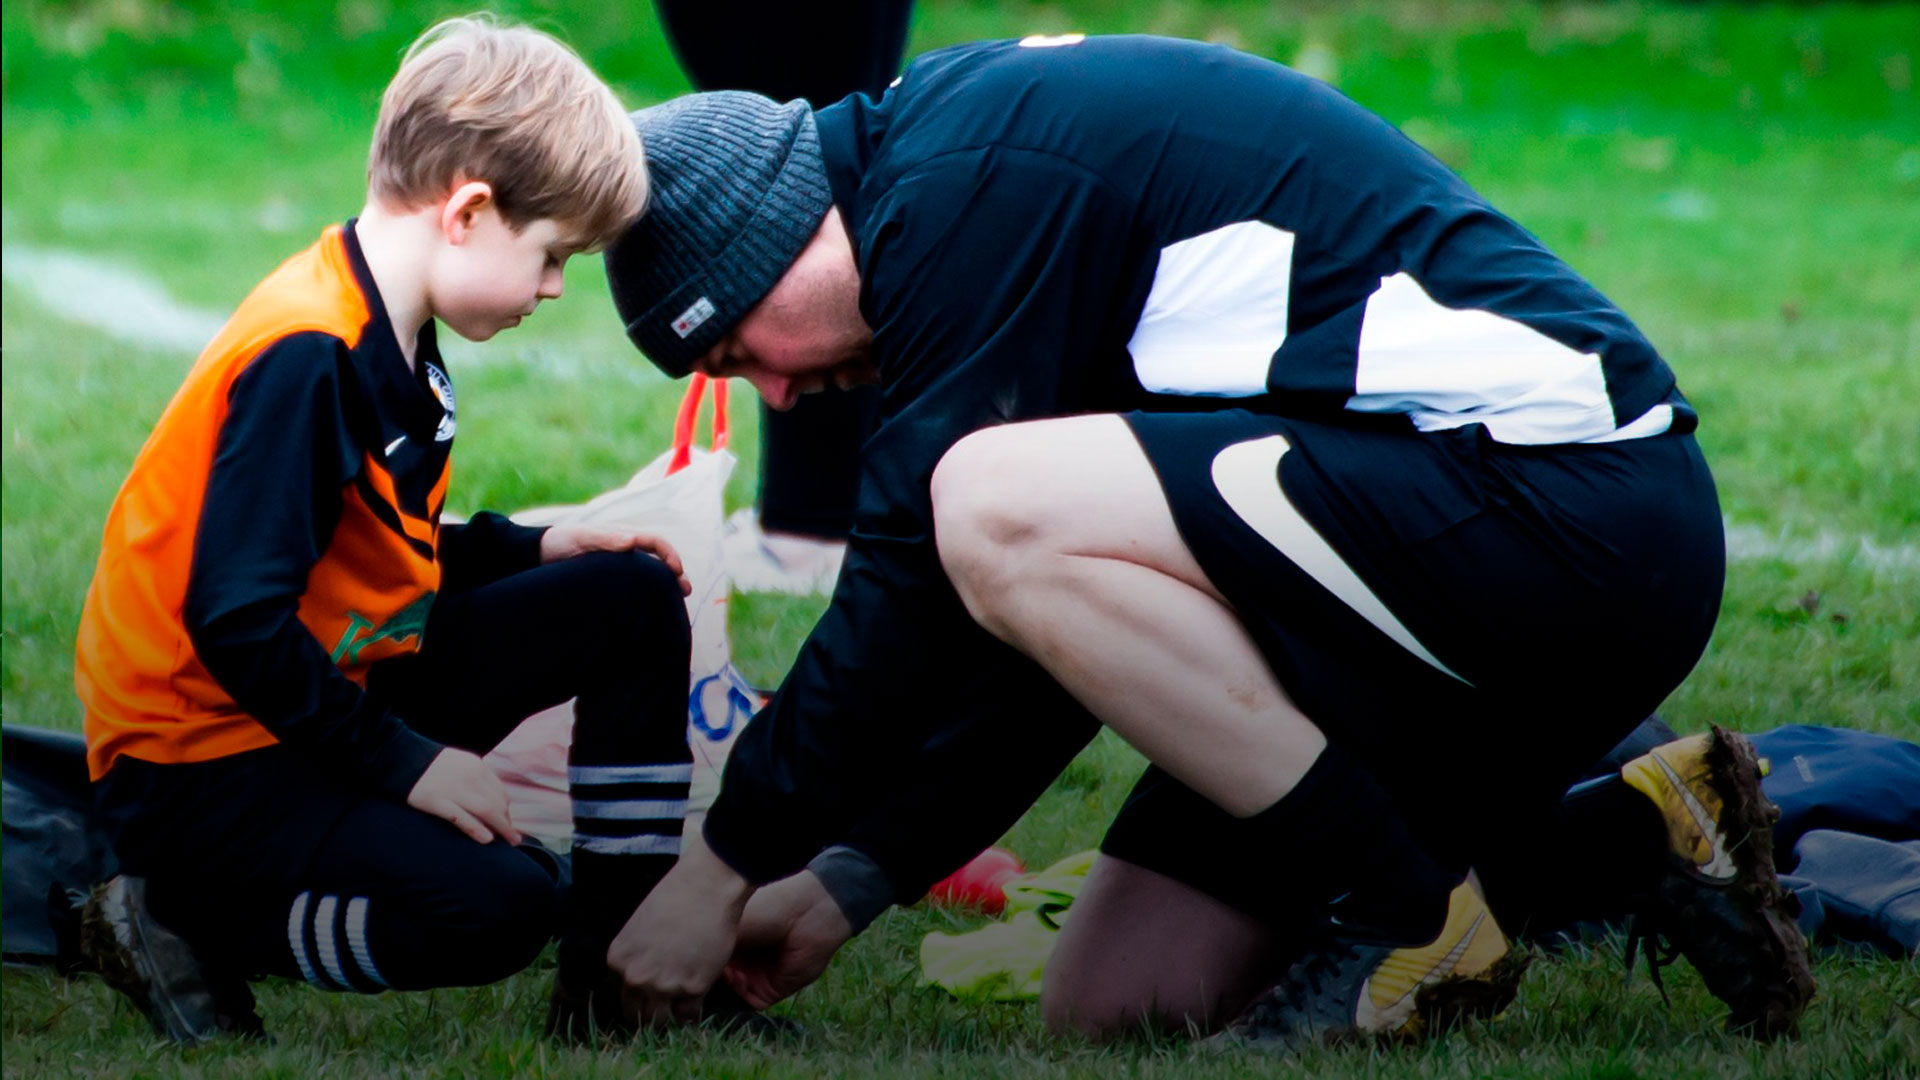 welfare and safeguarding in grassroots football